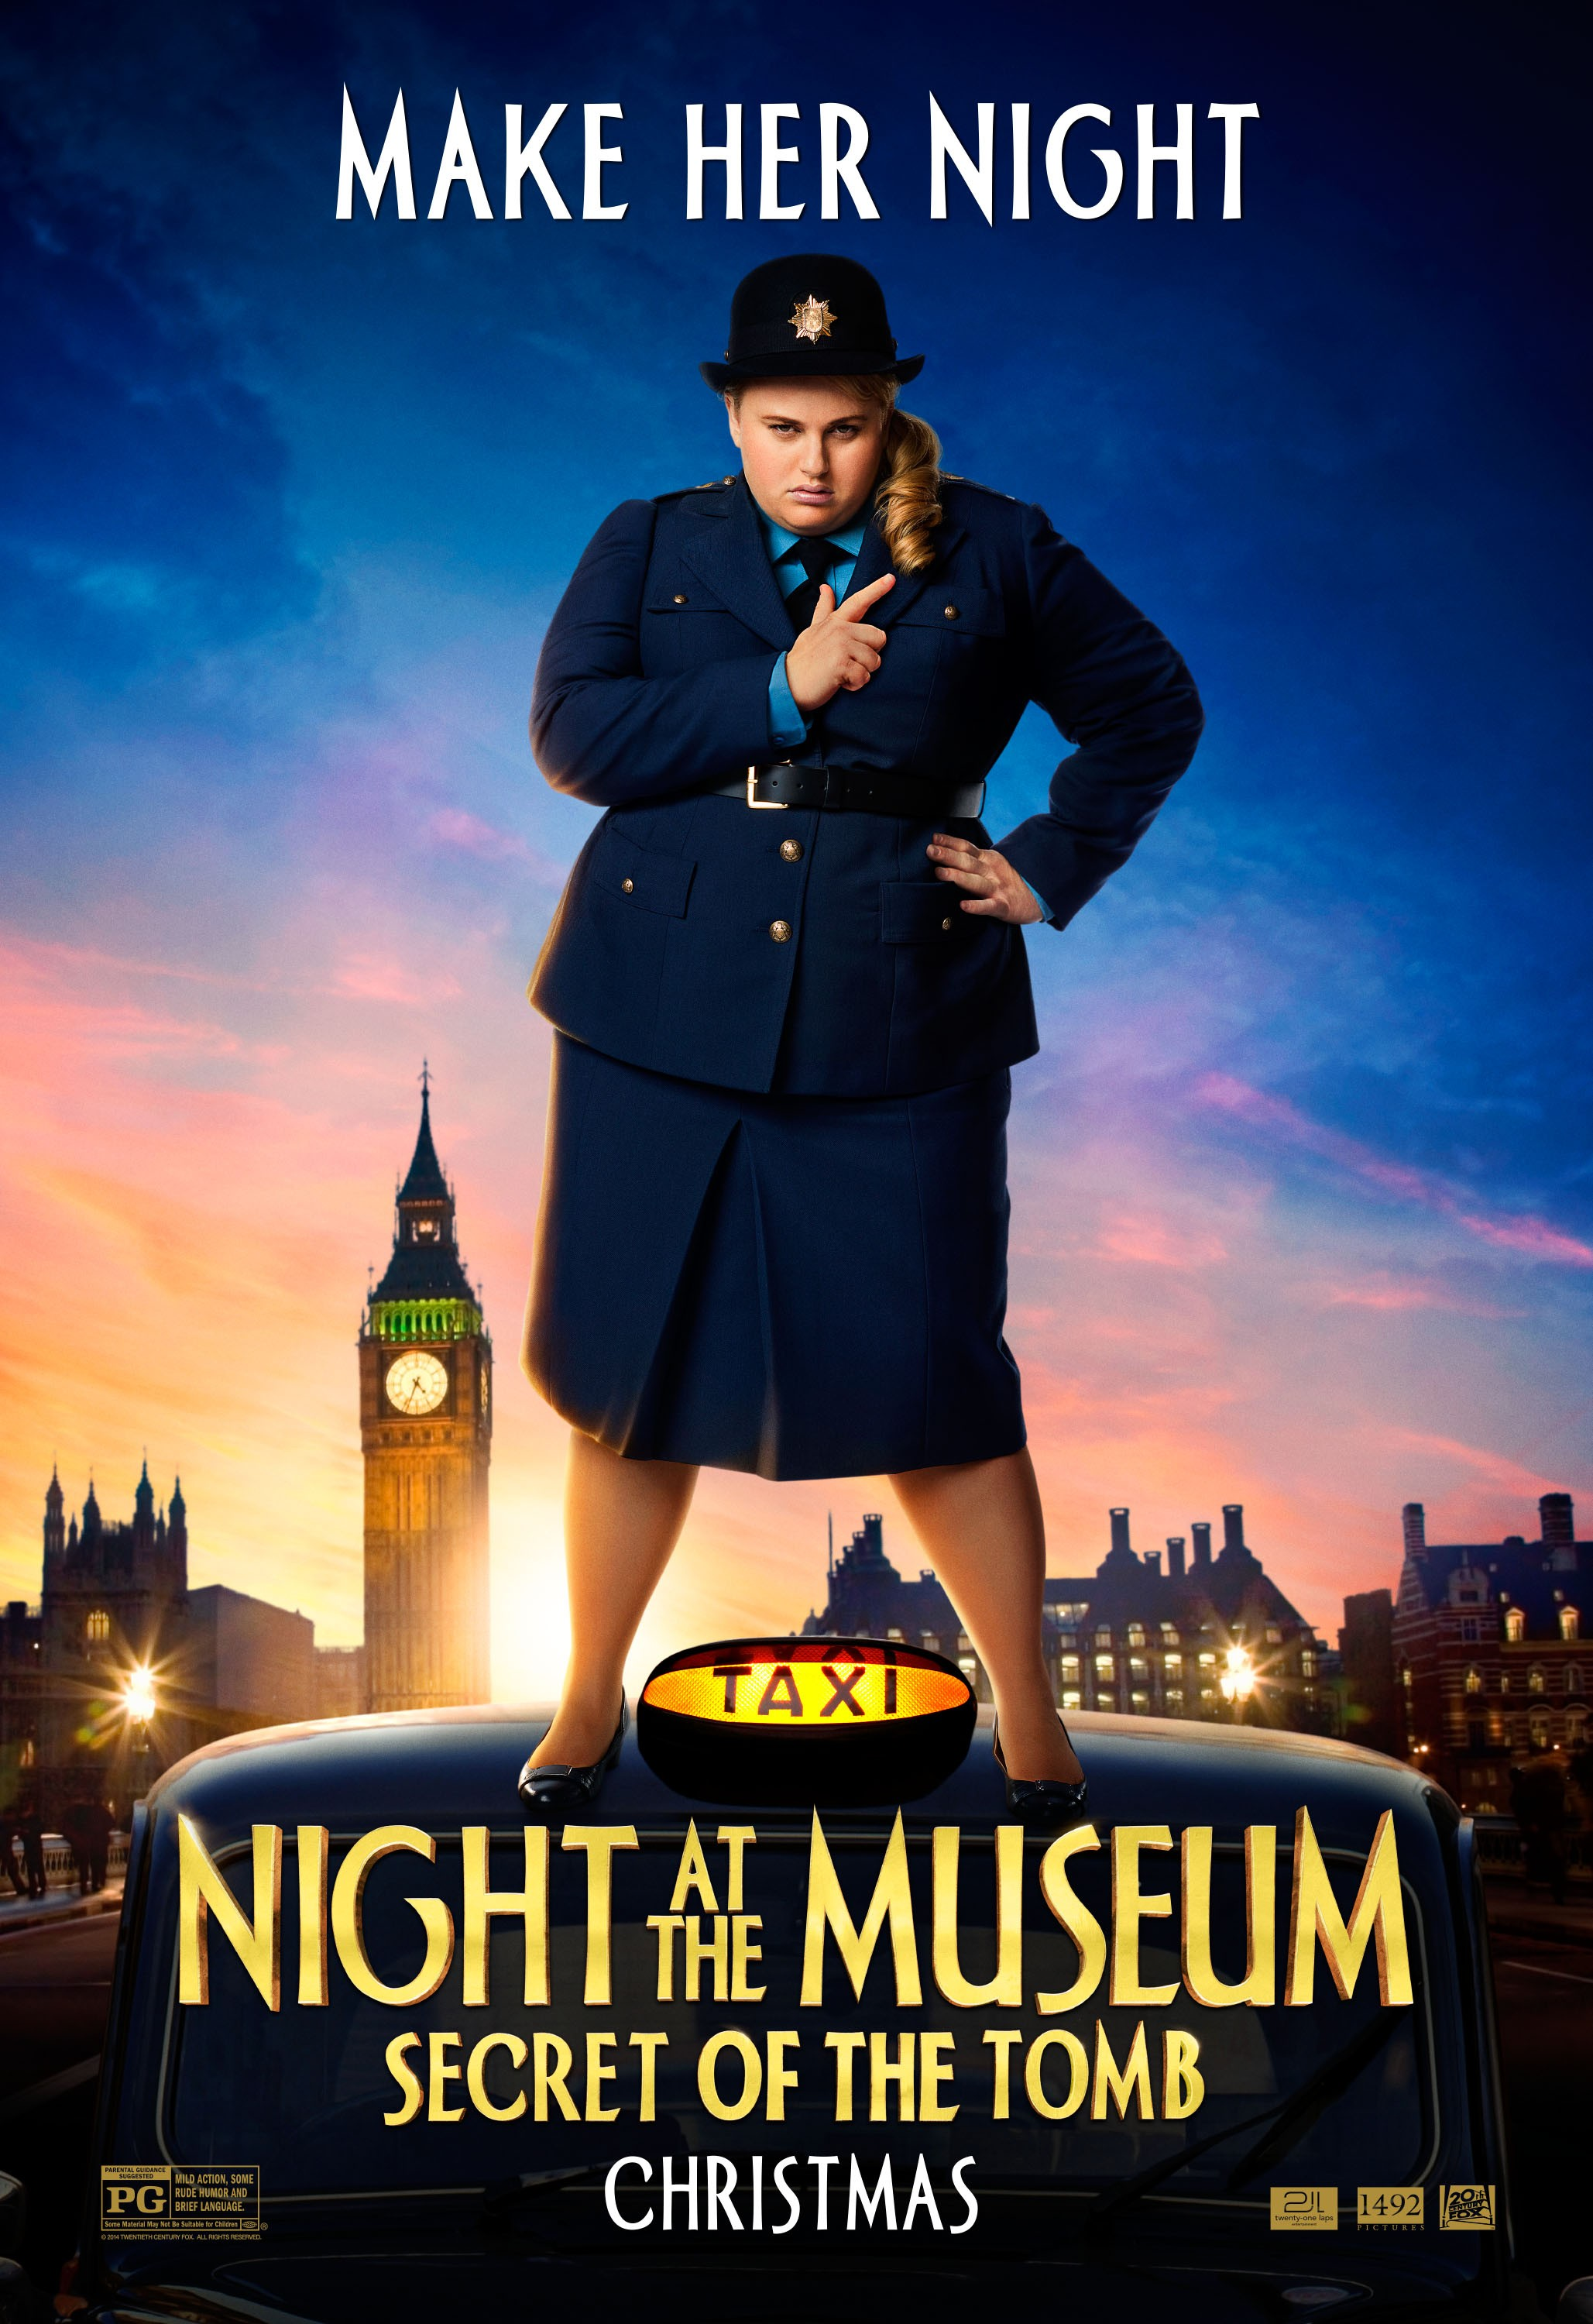 night at the museum secret of the tomb poster #16reggie's take